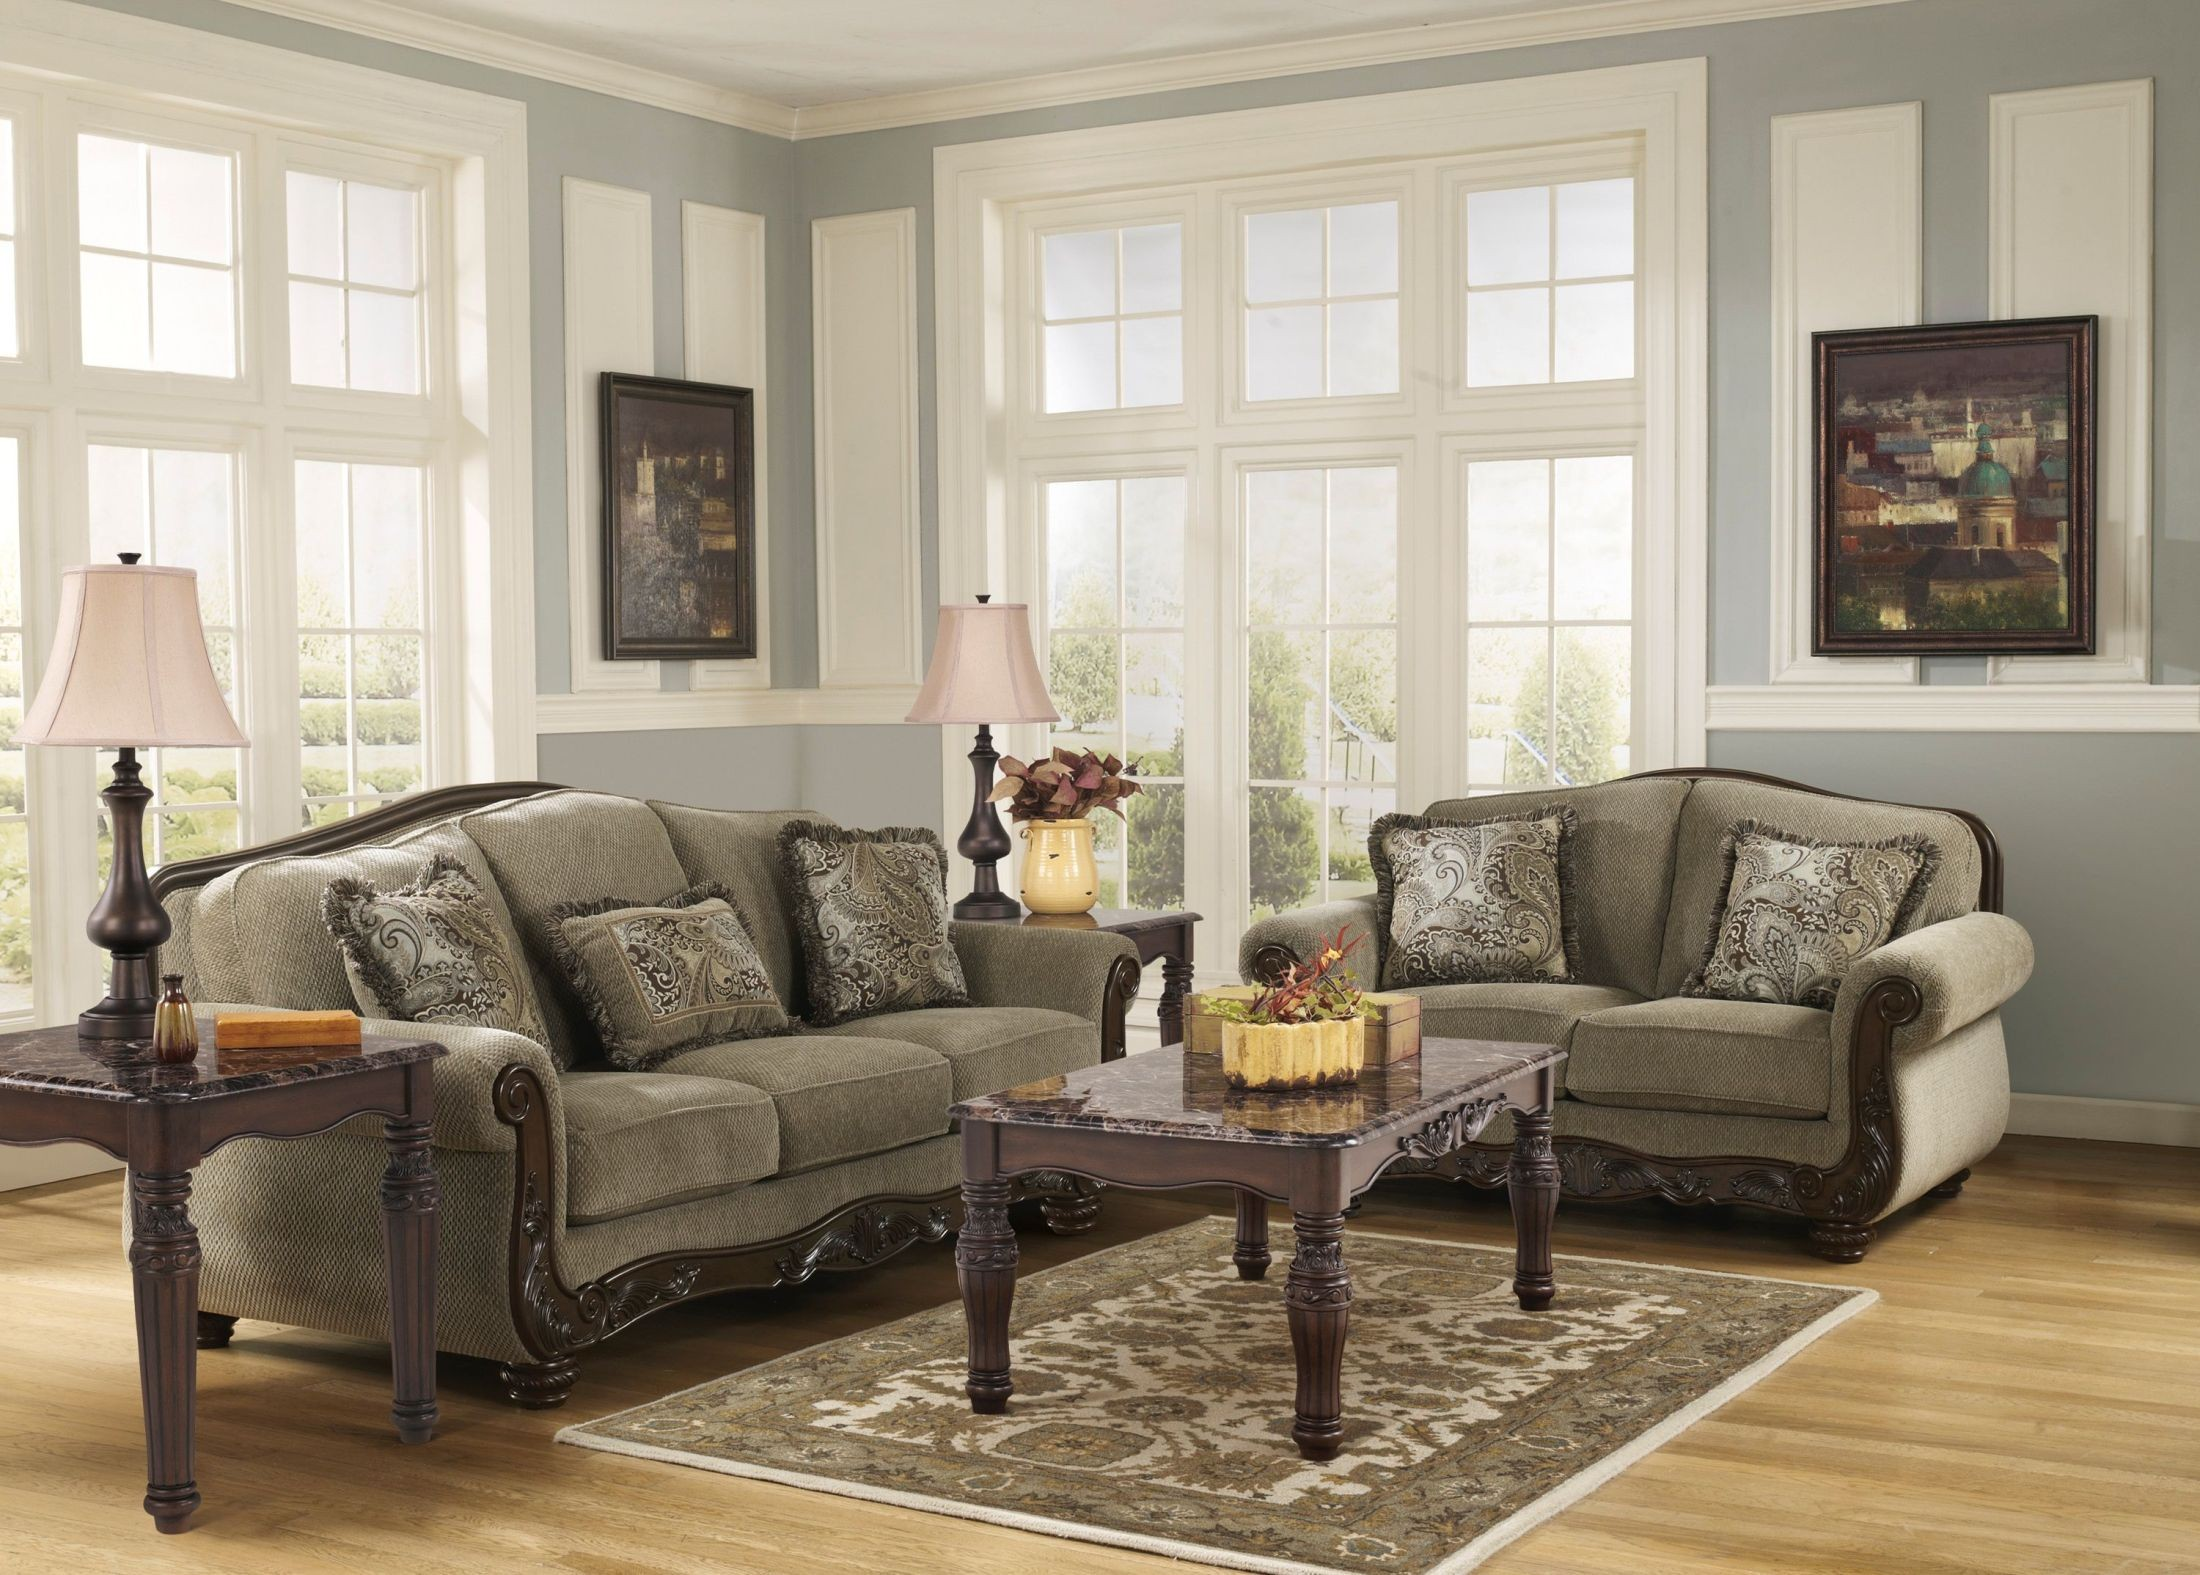 martinsburg meadow living room set from ashley 57300 coleman furniture